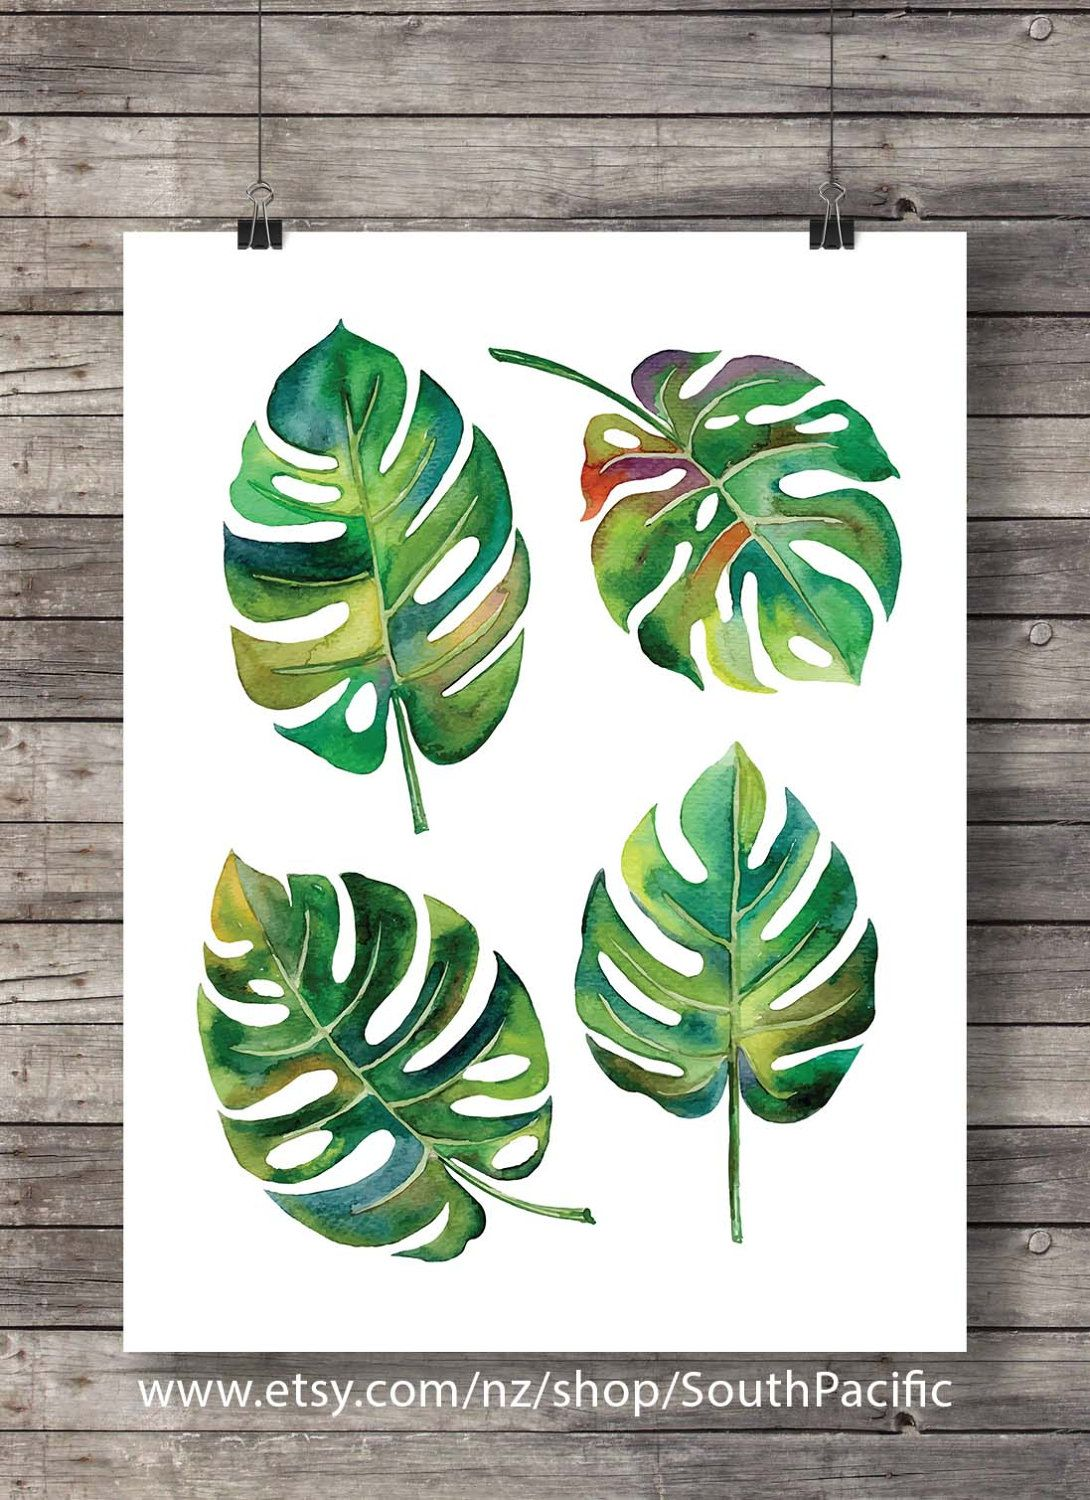 Printable art   Watercolor Monstera leaves   Fruit salad plant swiss cheese plant   tropical leaf botanical illustration   Instant download